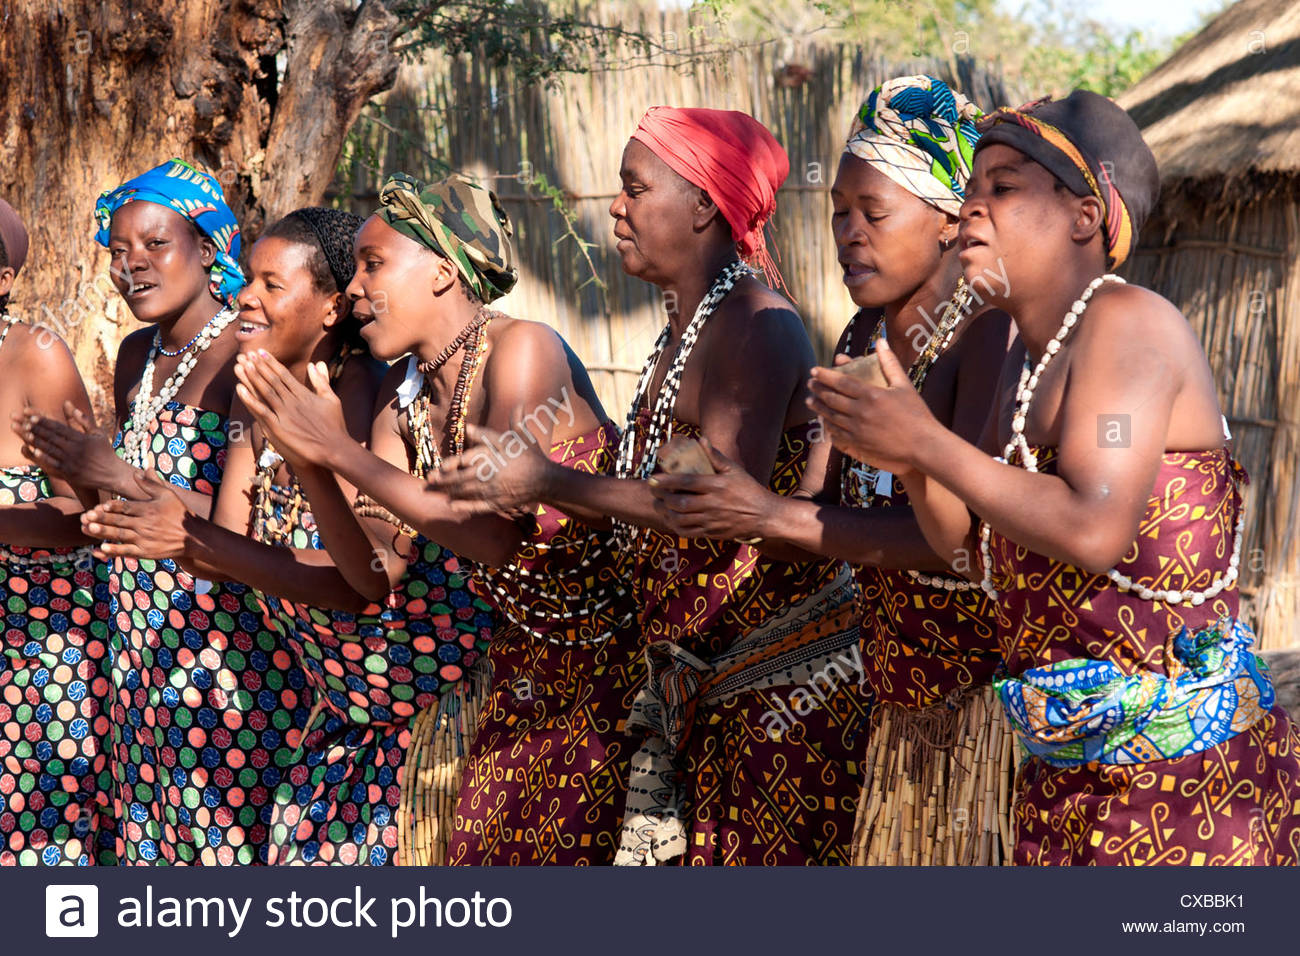 Villagers Women Stock Photos Amp Villagers Women Stock Images Alamy